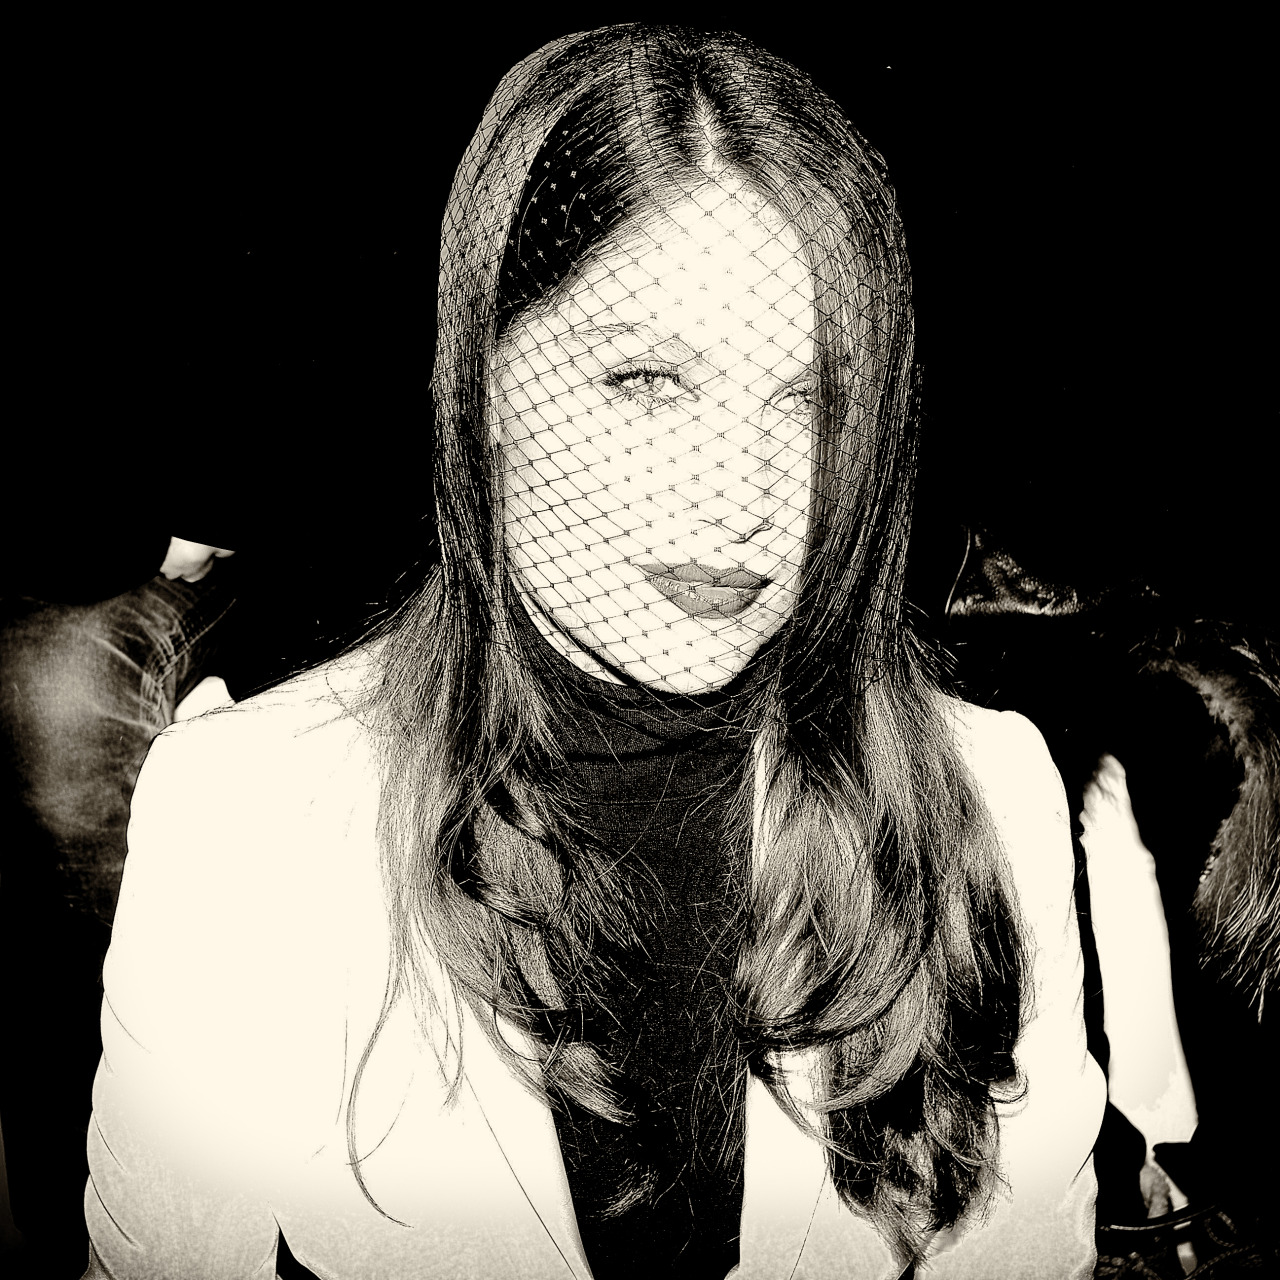 Laetitia Casta at Dior show in Paris looking mysterious in her voile headpiece.